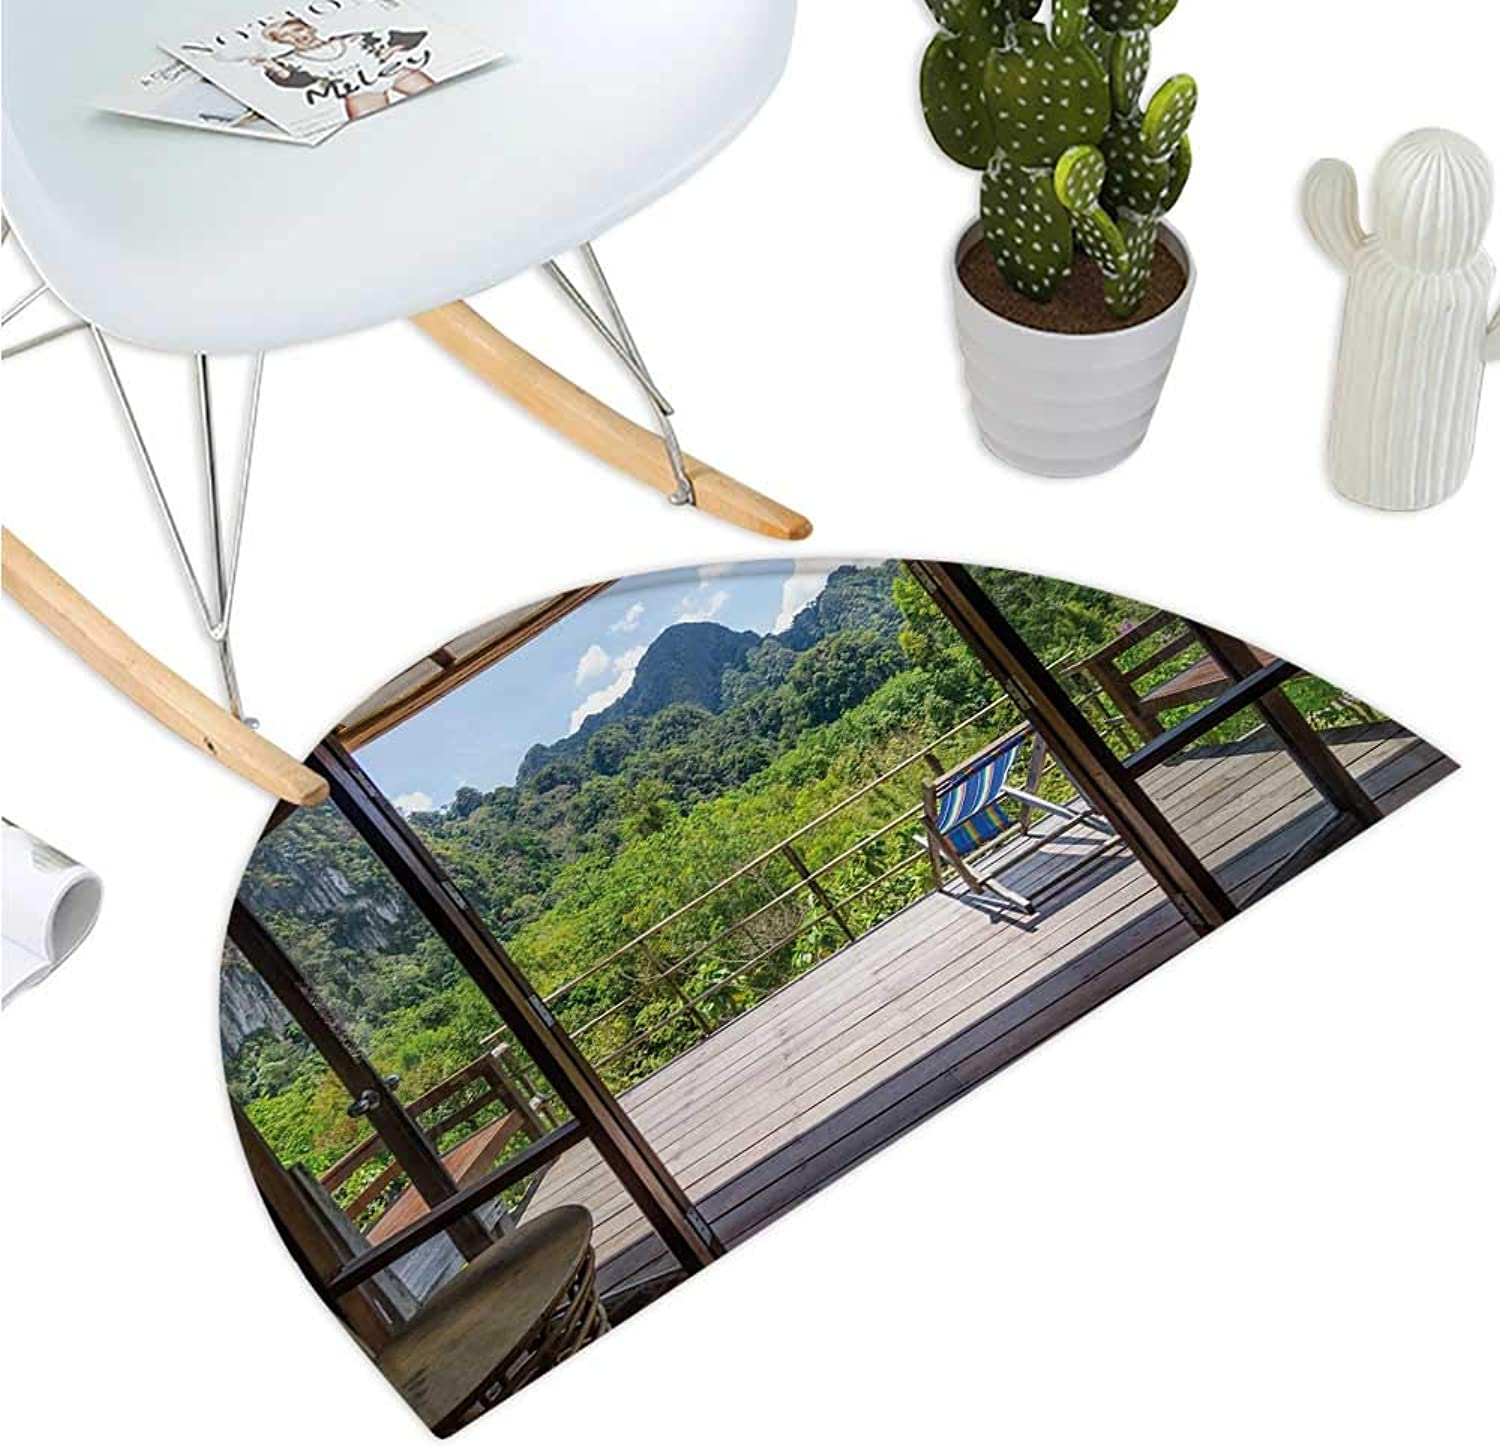 Modern Semicircular Cushion Summer Vibes Sunny Day in Forest Mountain Flowers Photograph Entry Door Mat H 35.4  xD 53.1  Pale Green Dark Green and White